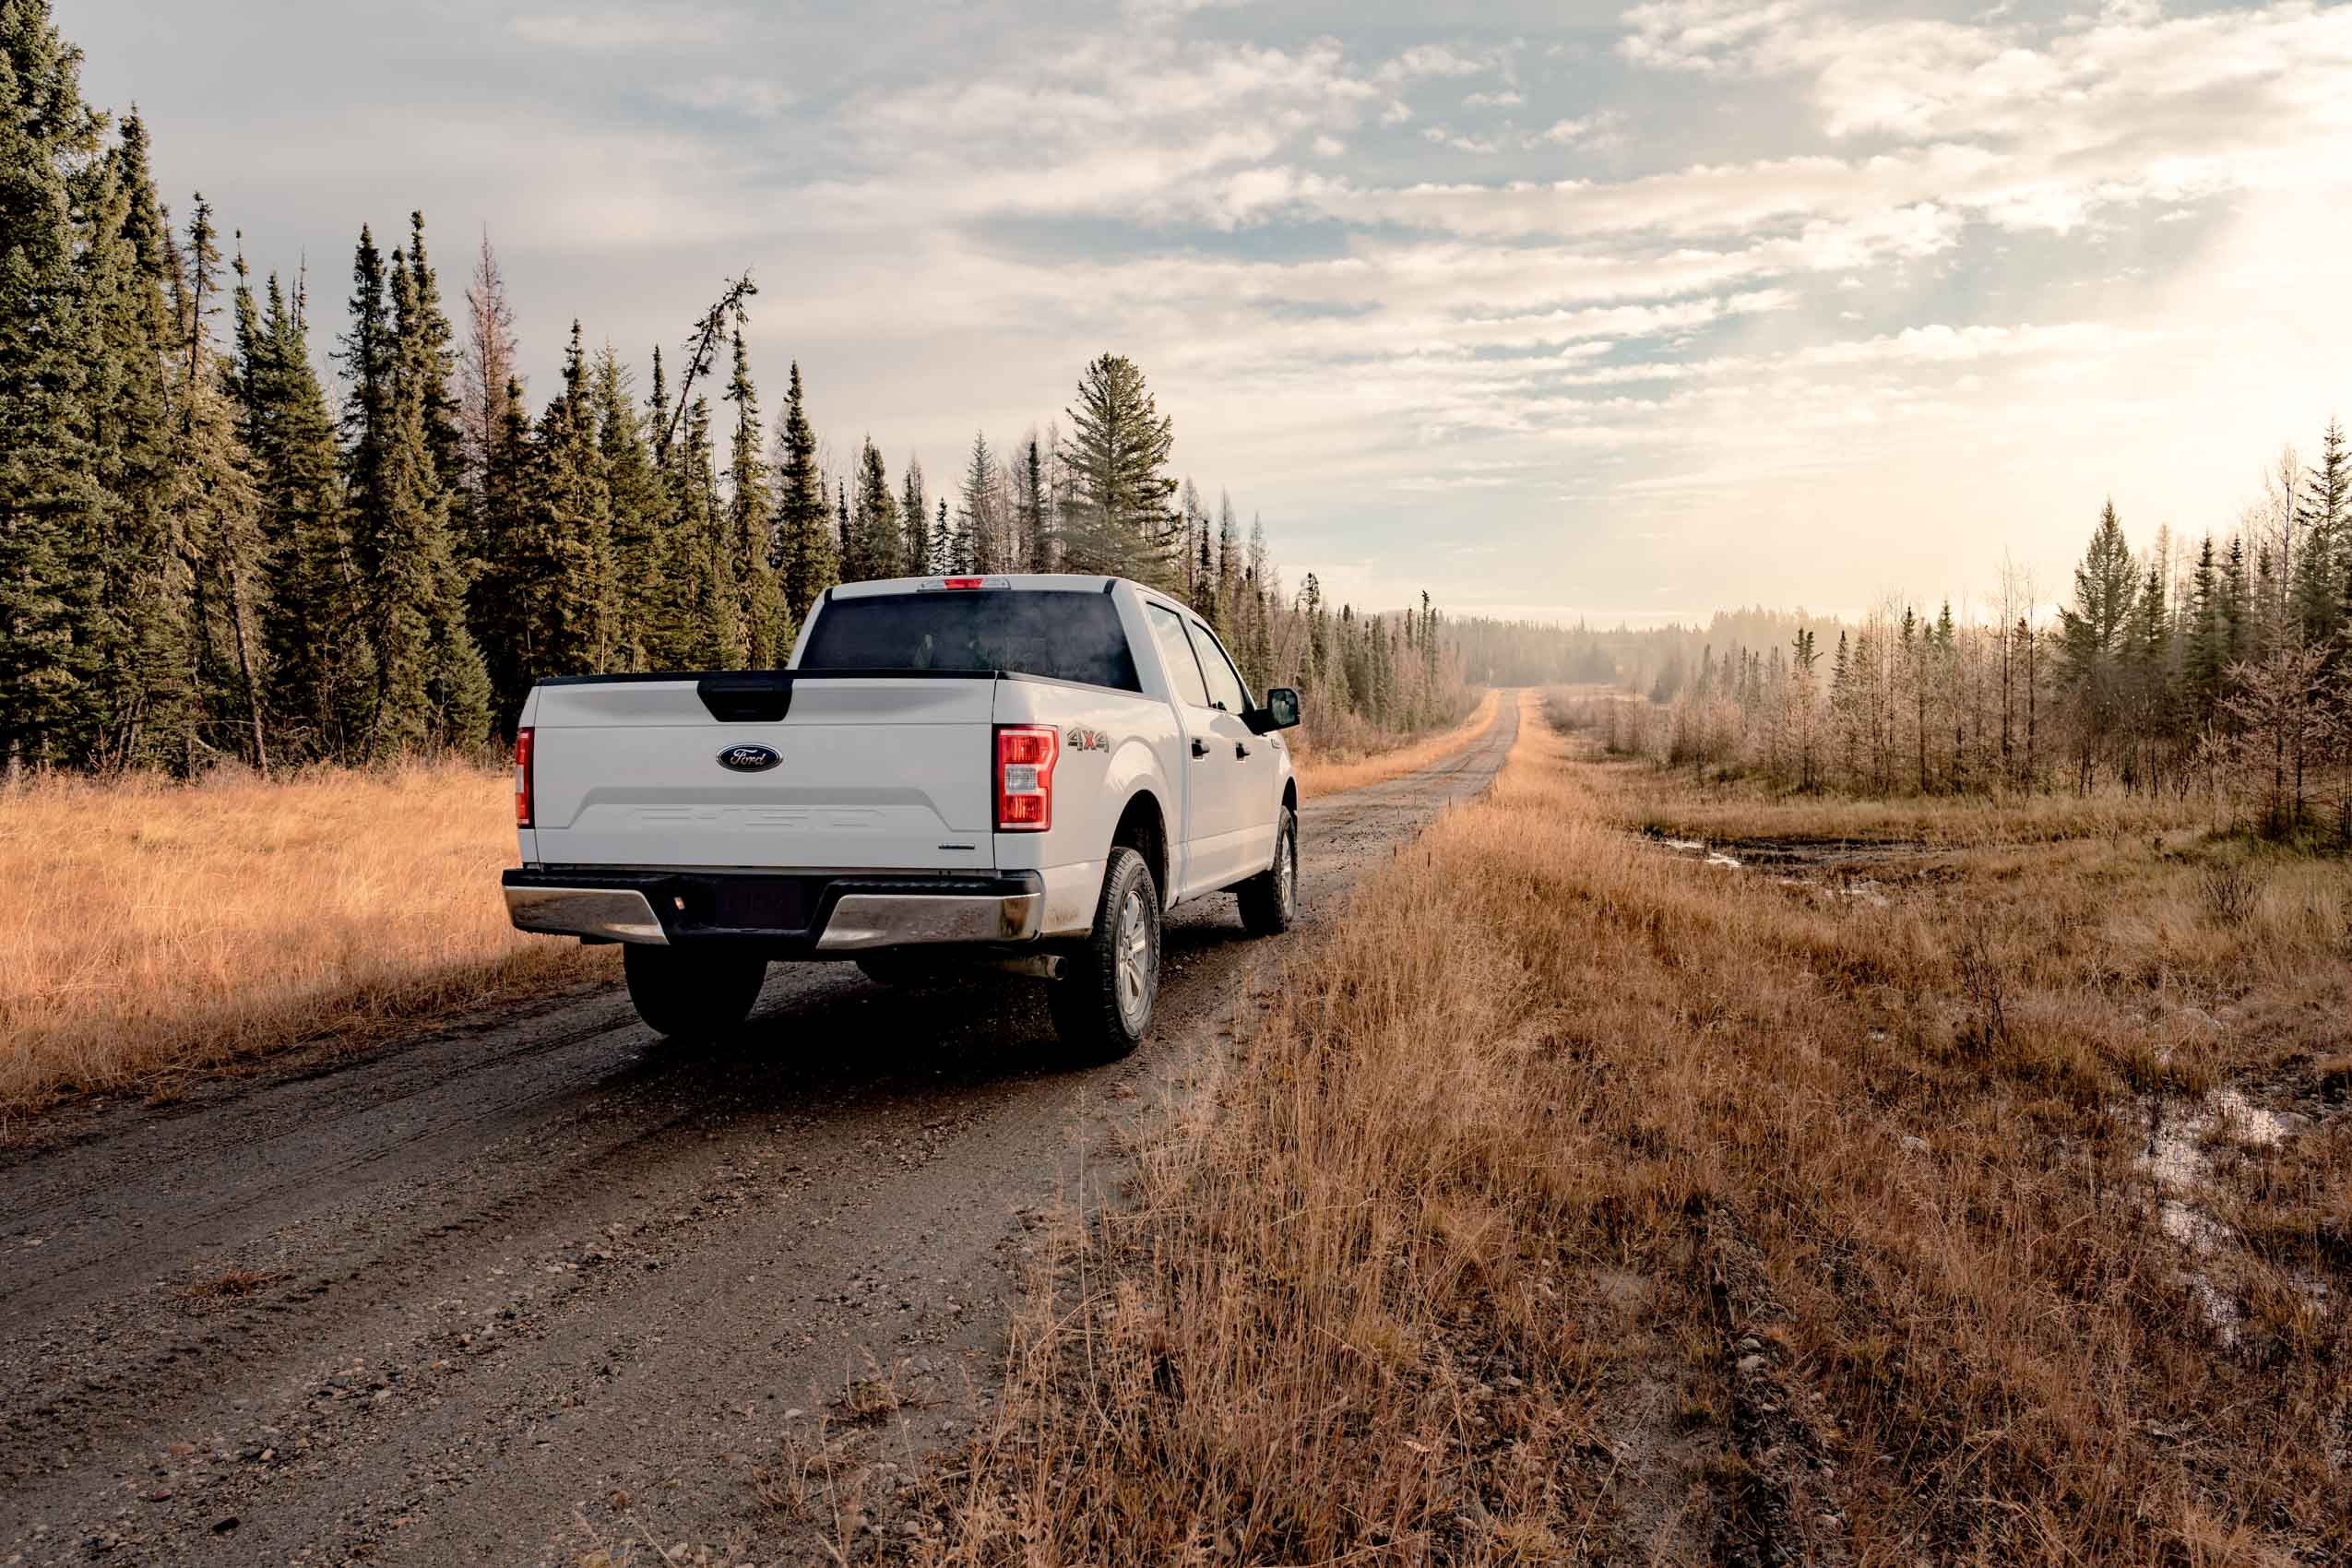 Ford F150 Ford Canada Karl Lee Alberta Car Photographer Automotive Photographer Commercial Photographer